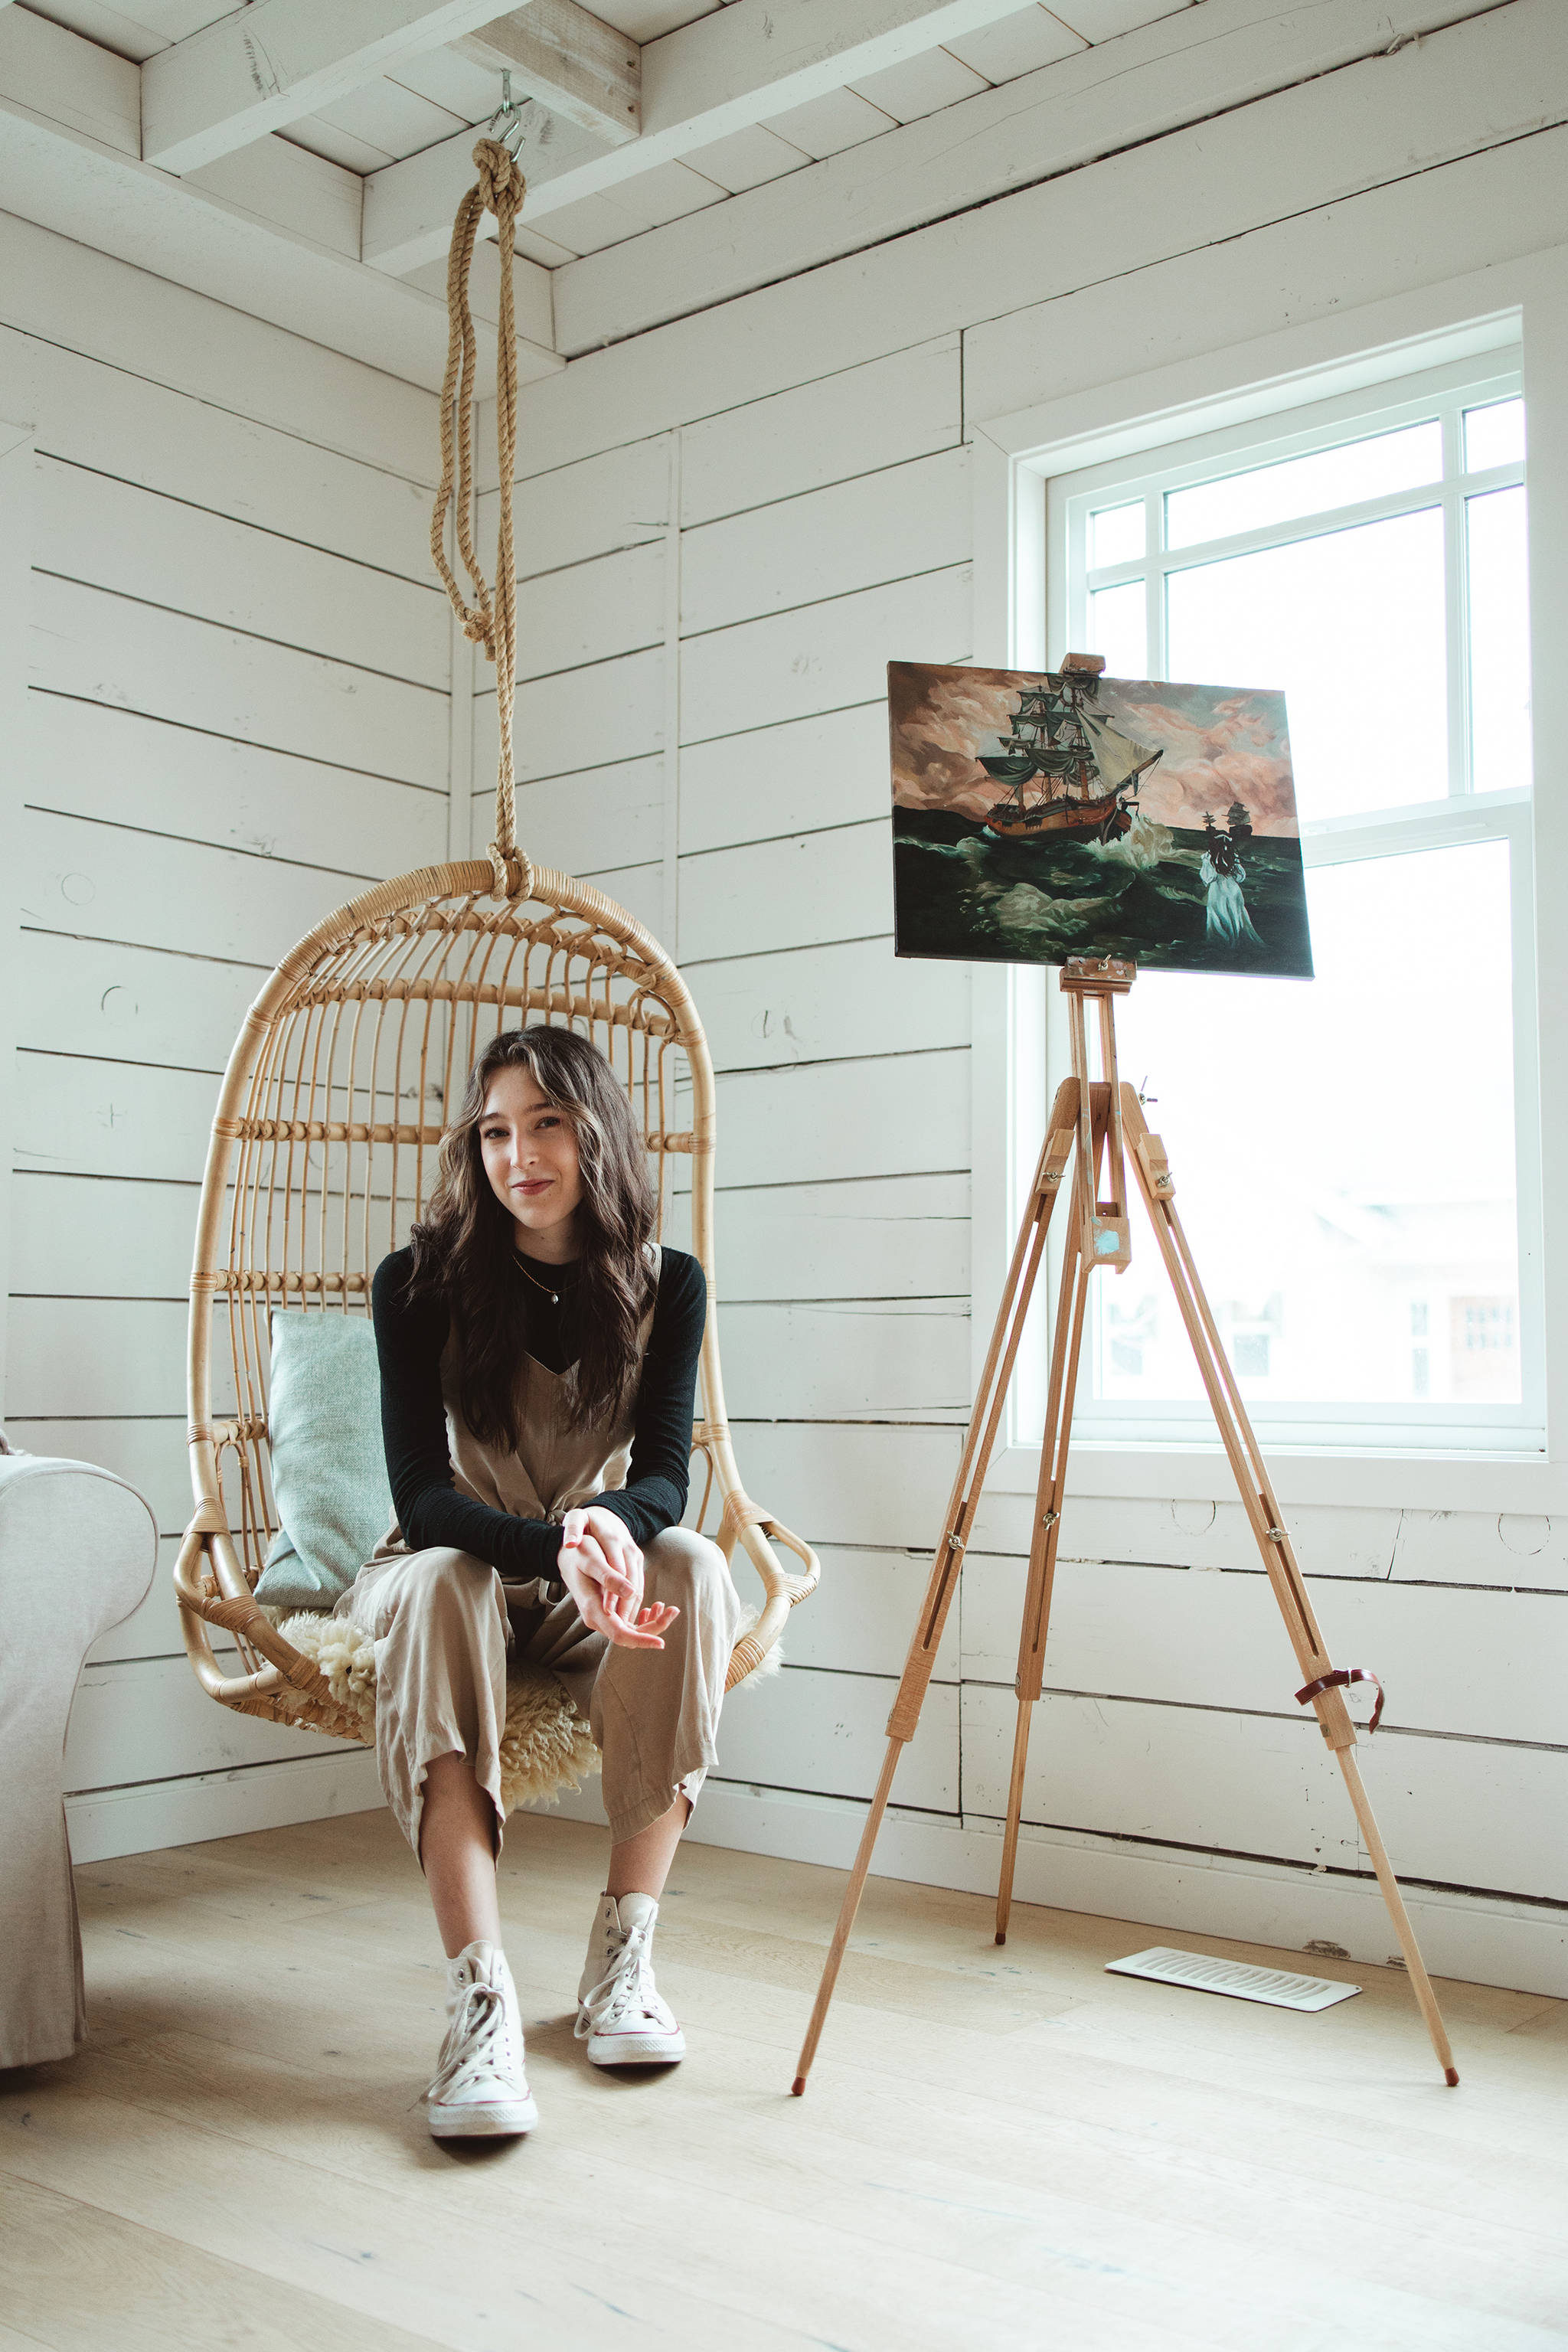 MEI grad Julia Martens is a skilled local artist who uses her synesthesia to create art. (Mitchell Cook photo)